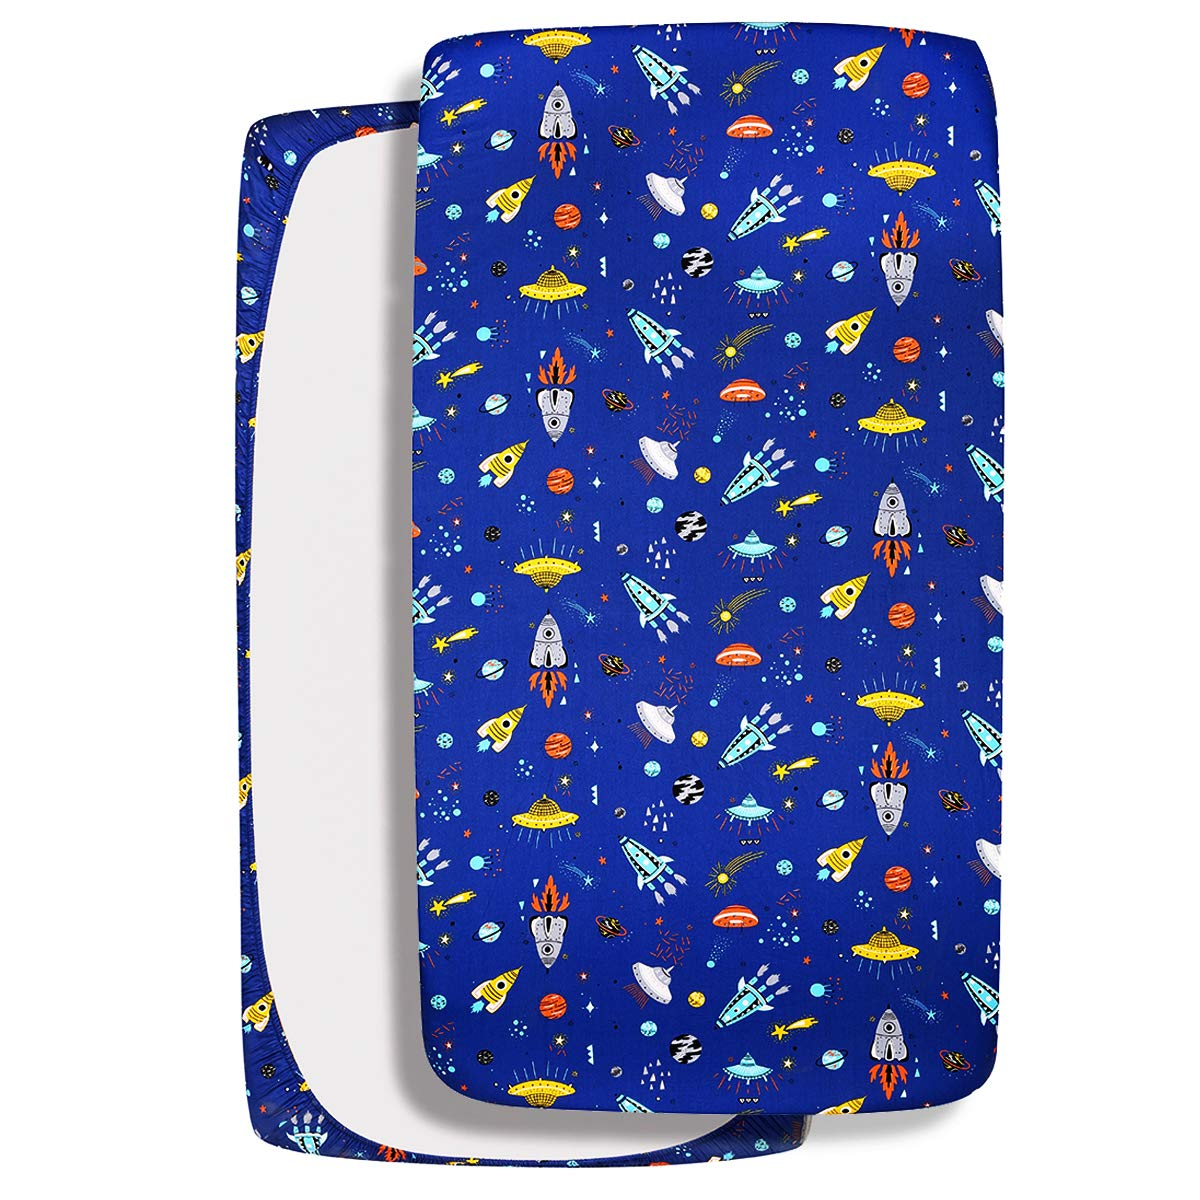 UOMNY Crib Sheet 100% Cotton Fitted Crib Sheet Baby Sheet for Standard Crib and Toddler mattresses Nursery Bedding Sheet Crib Mattress Sheets for Boys 1 Pack Spaceship Blue